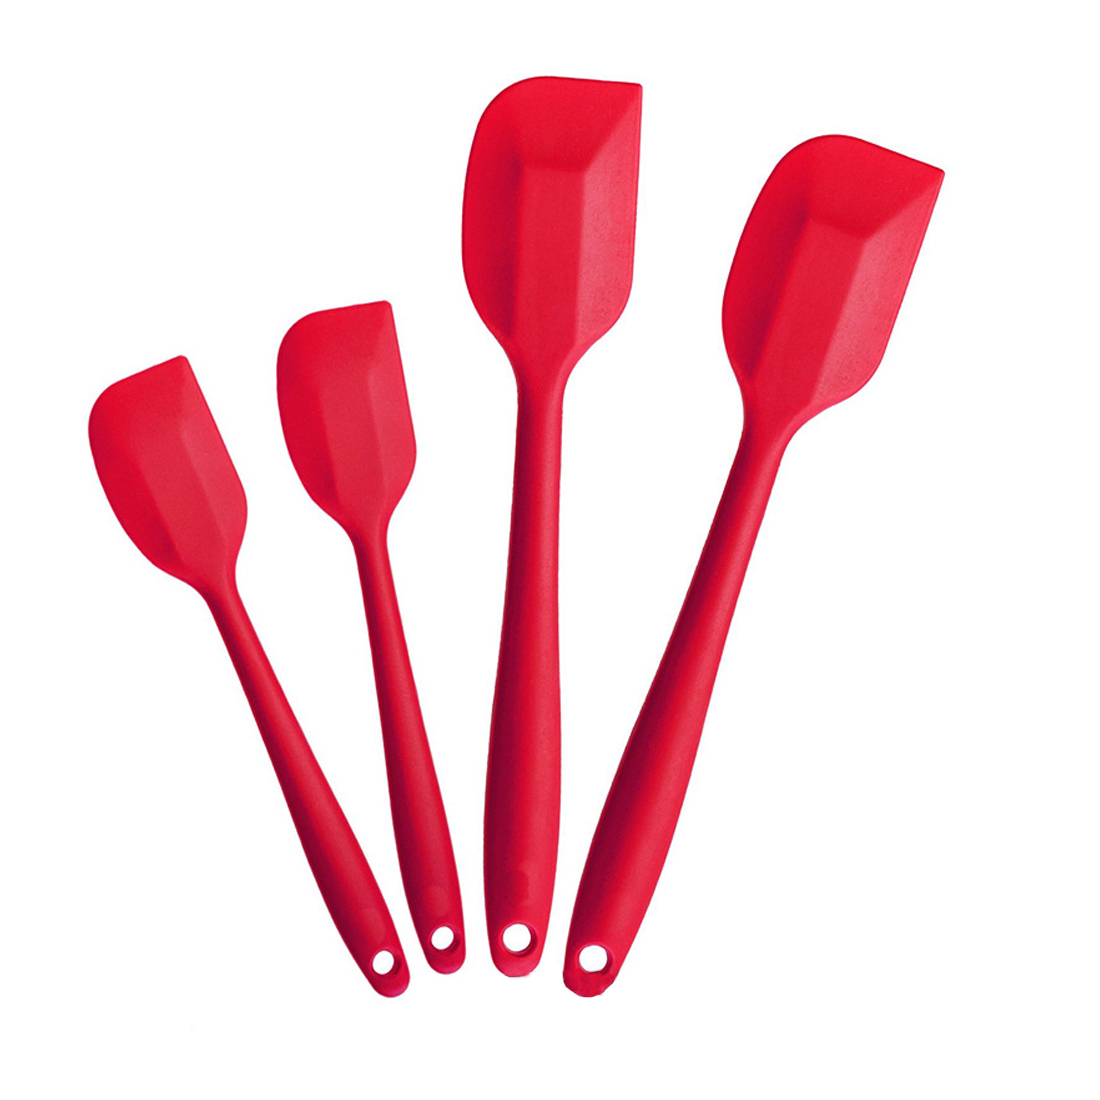 4 Pcs/Set Food Grade Silicone Cooking Tools Sets Heat Resitant Non-Stick Red Spatula Cooking Bake Tool DIY Home Cooking Tool Set